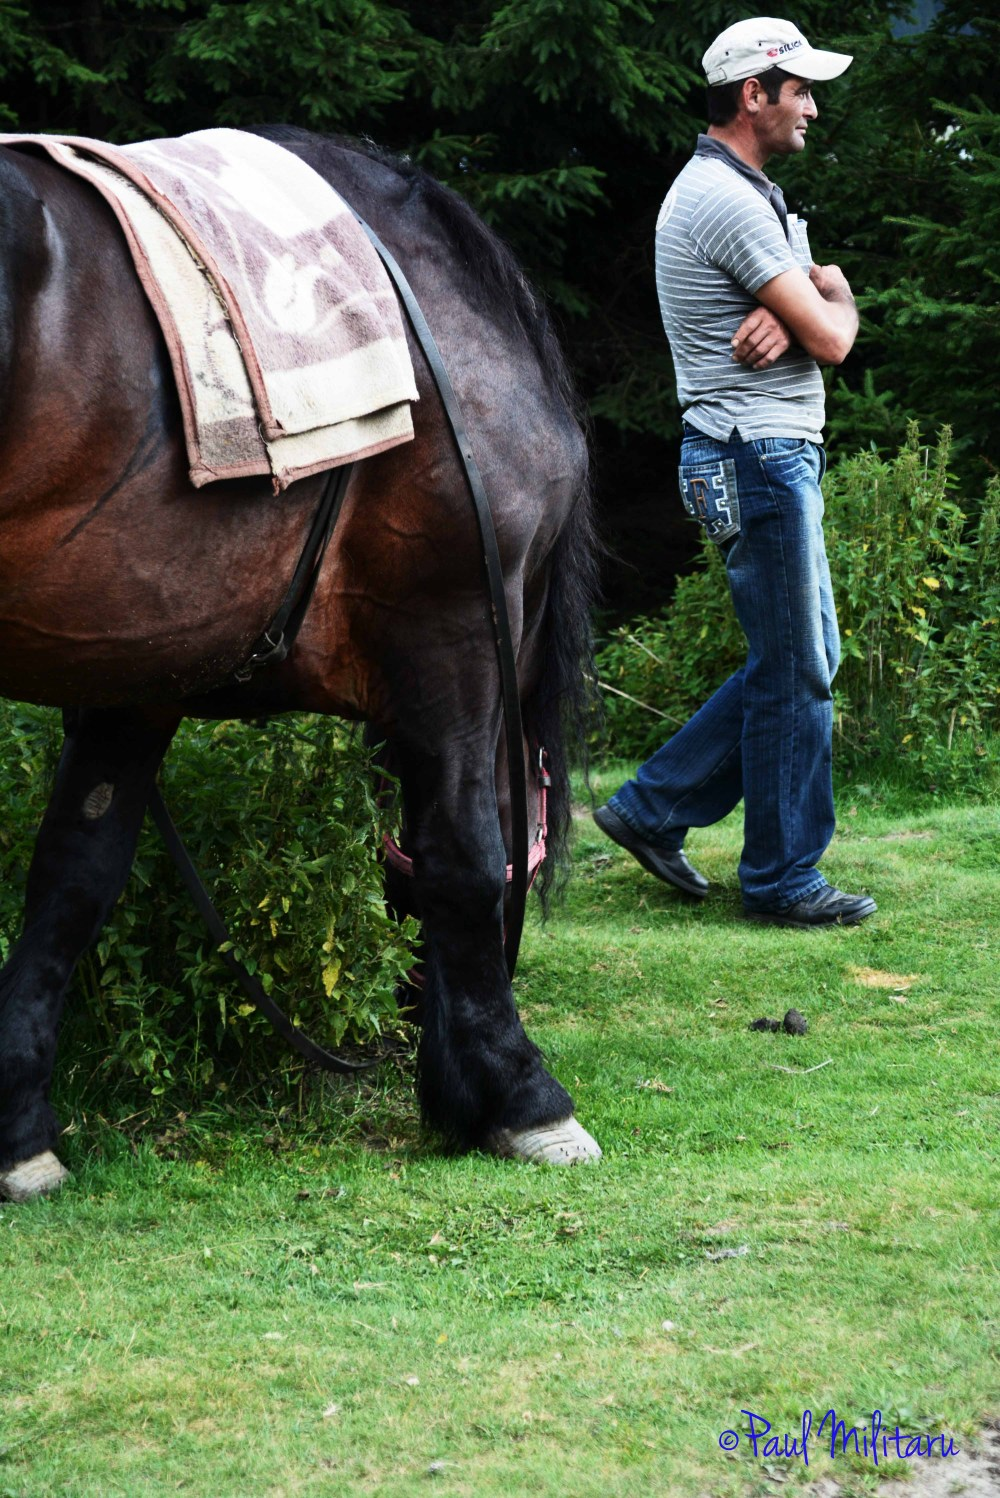 he and his friend the horse